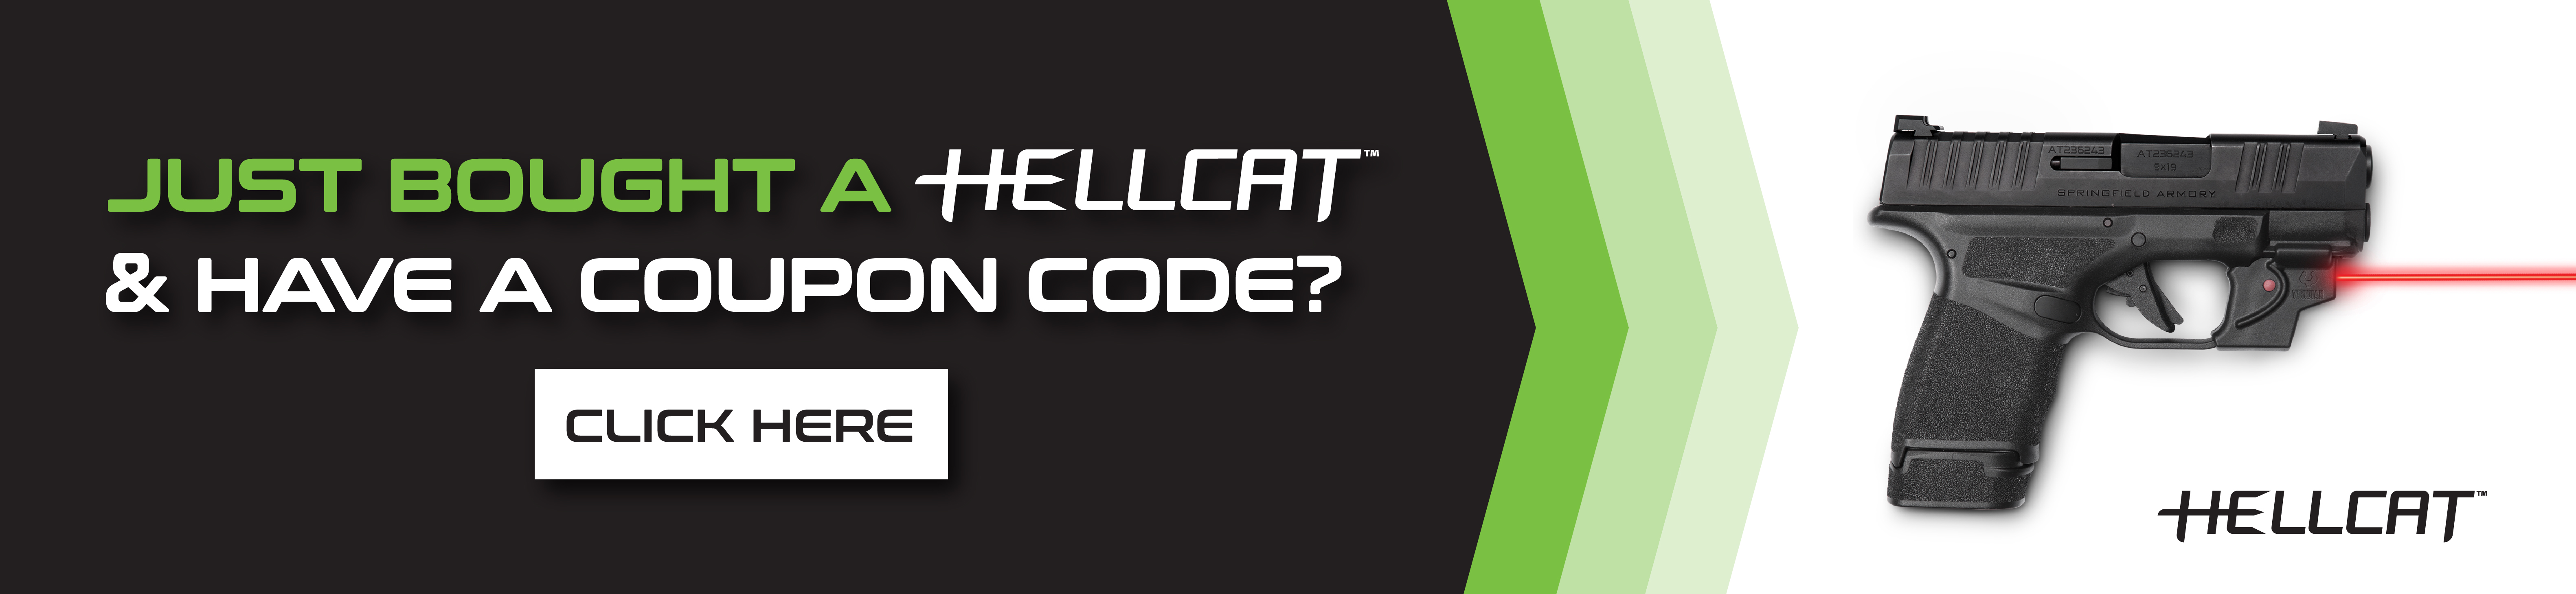 Hellcat coupon? Click Here